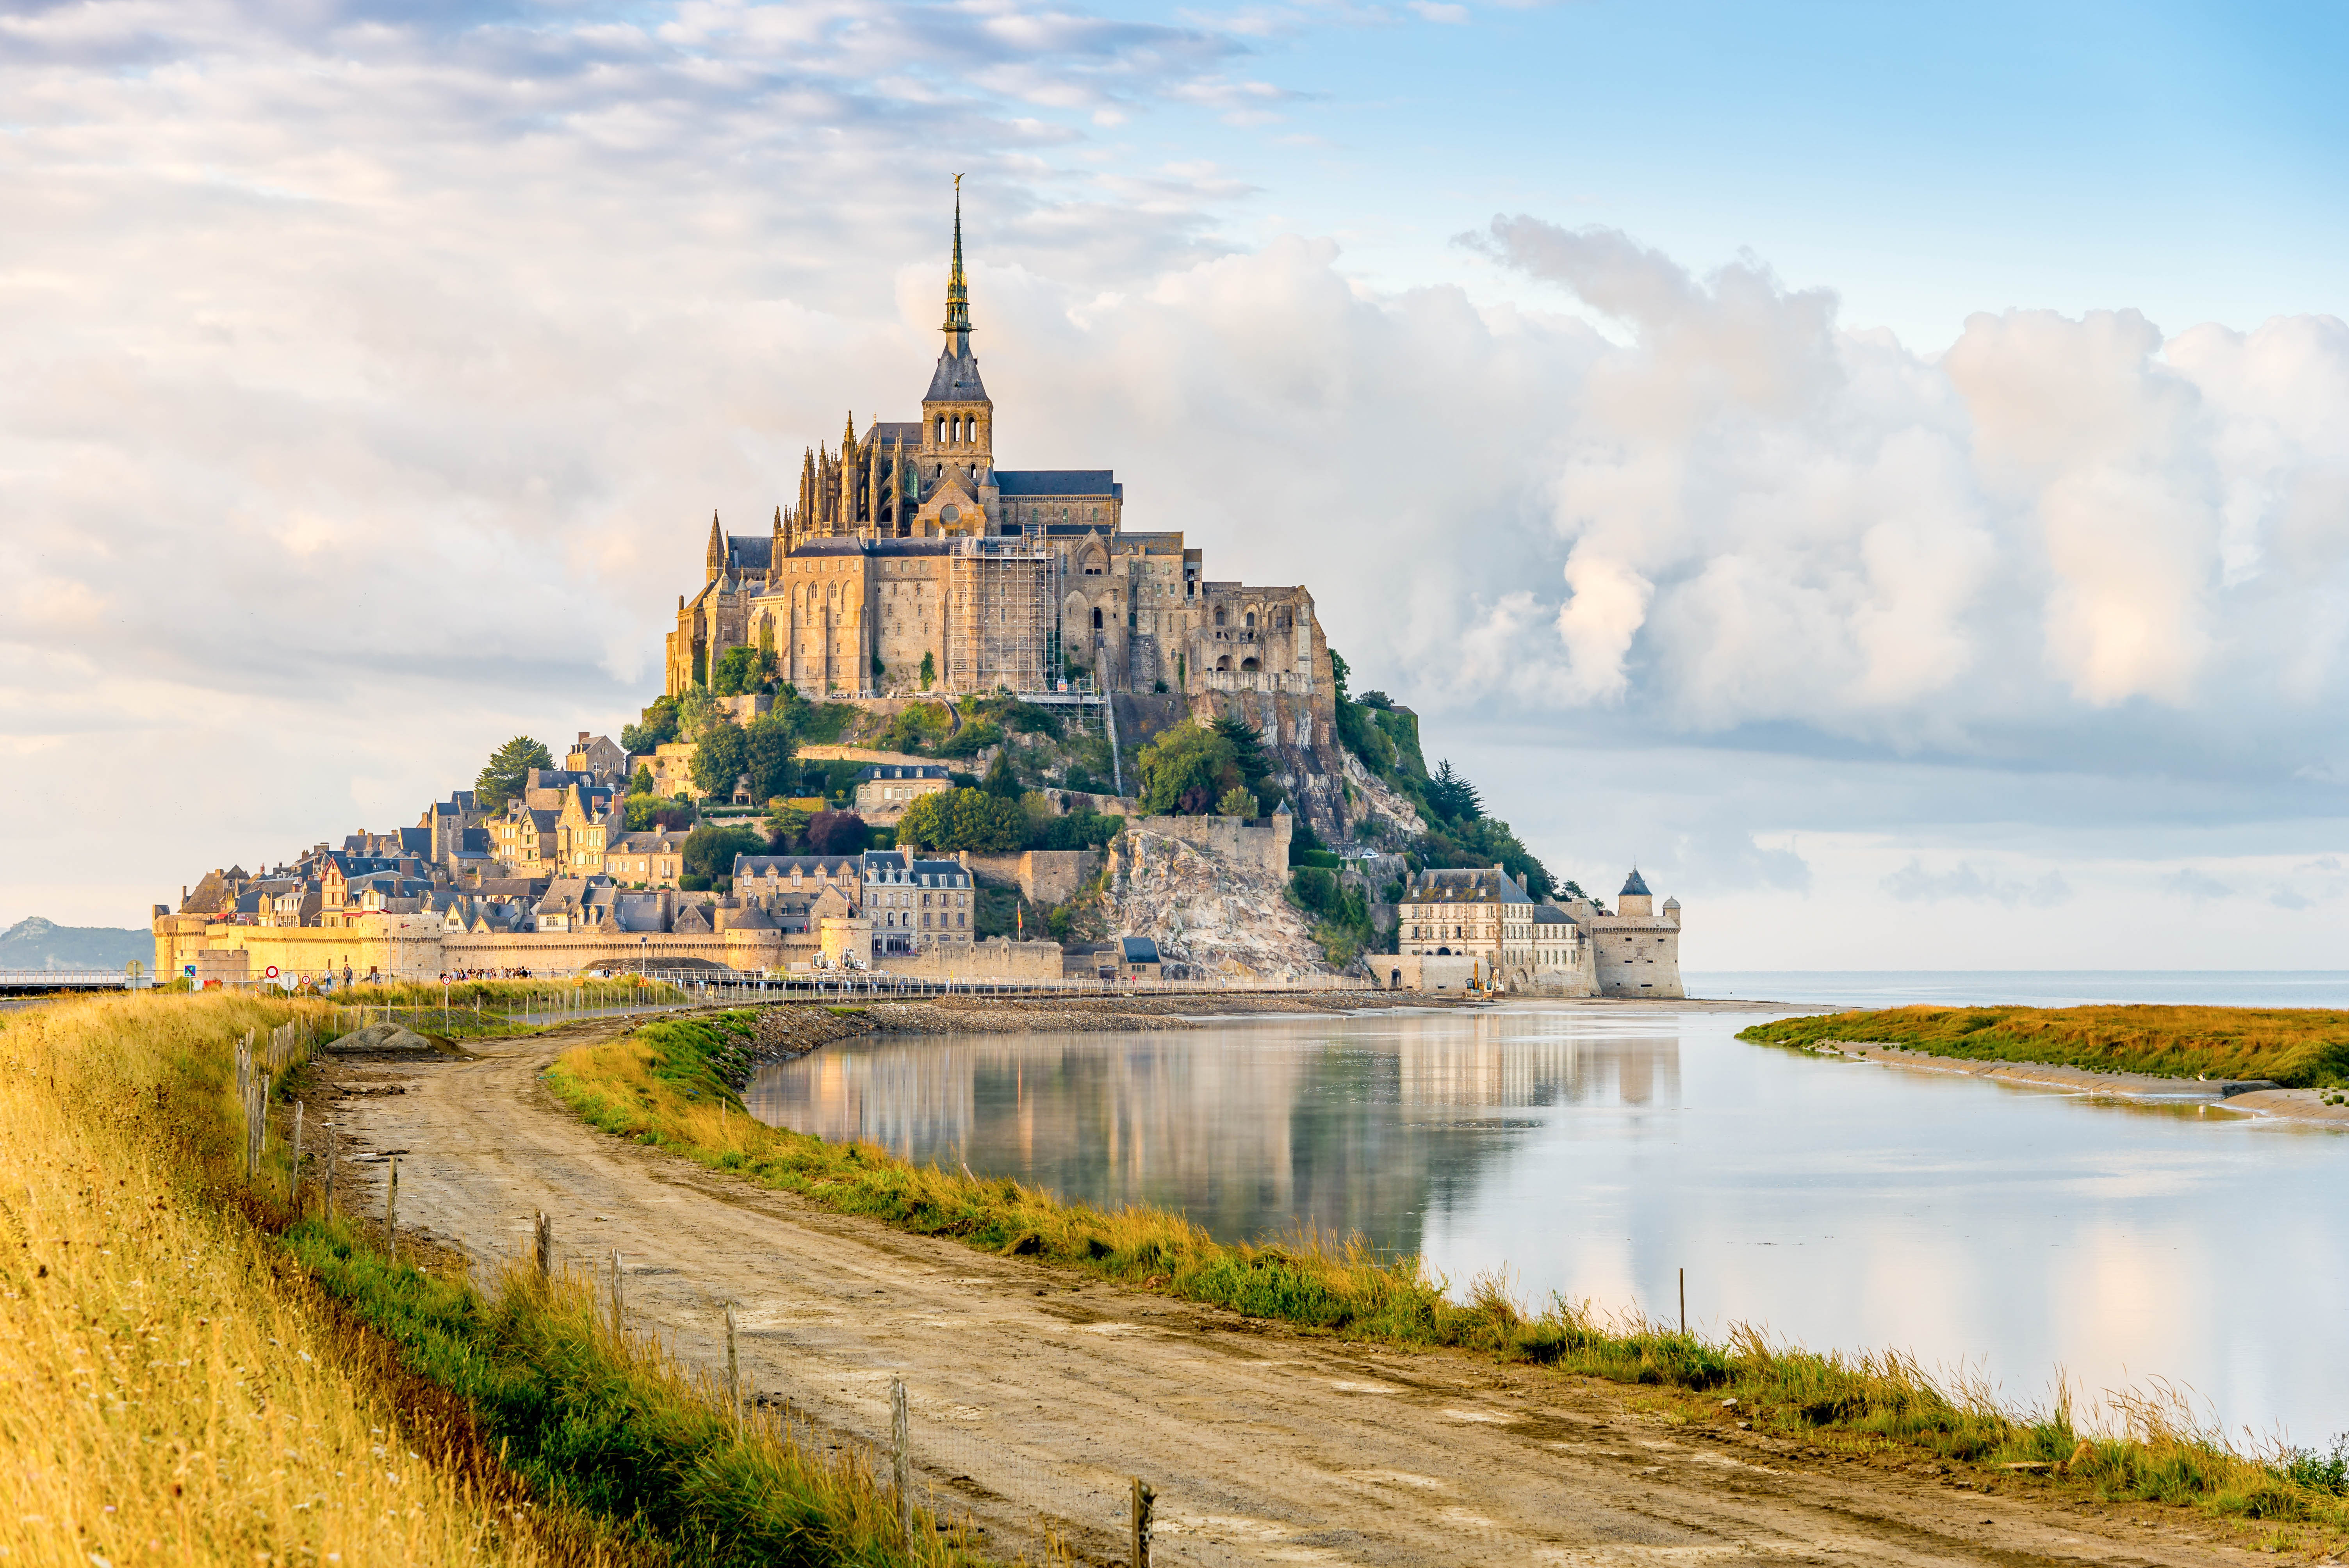 mont saint michel beautiful hd wallpapers images in high resolution all hd wallpapers. Black Bedroom Furniture Sets. Home Design Ideas